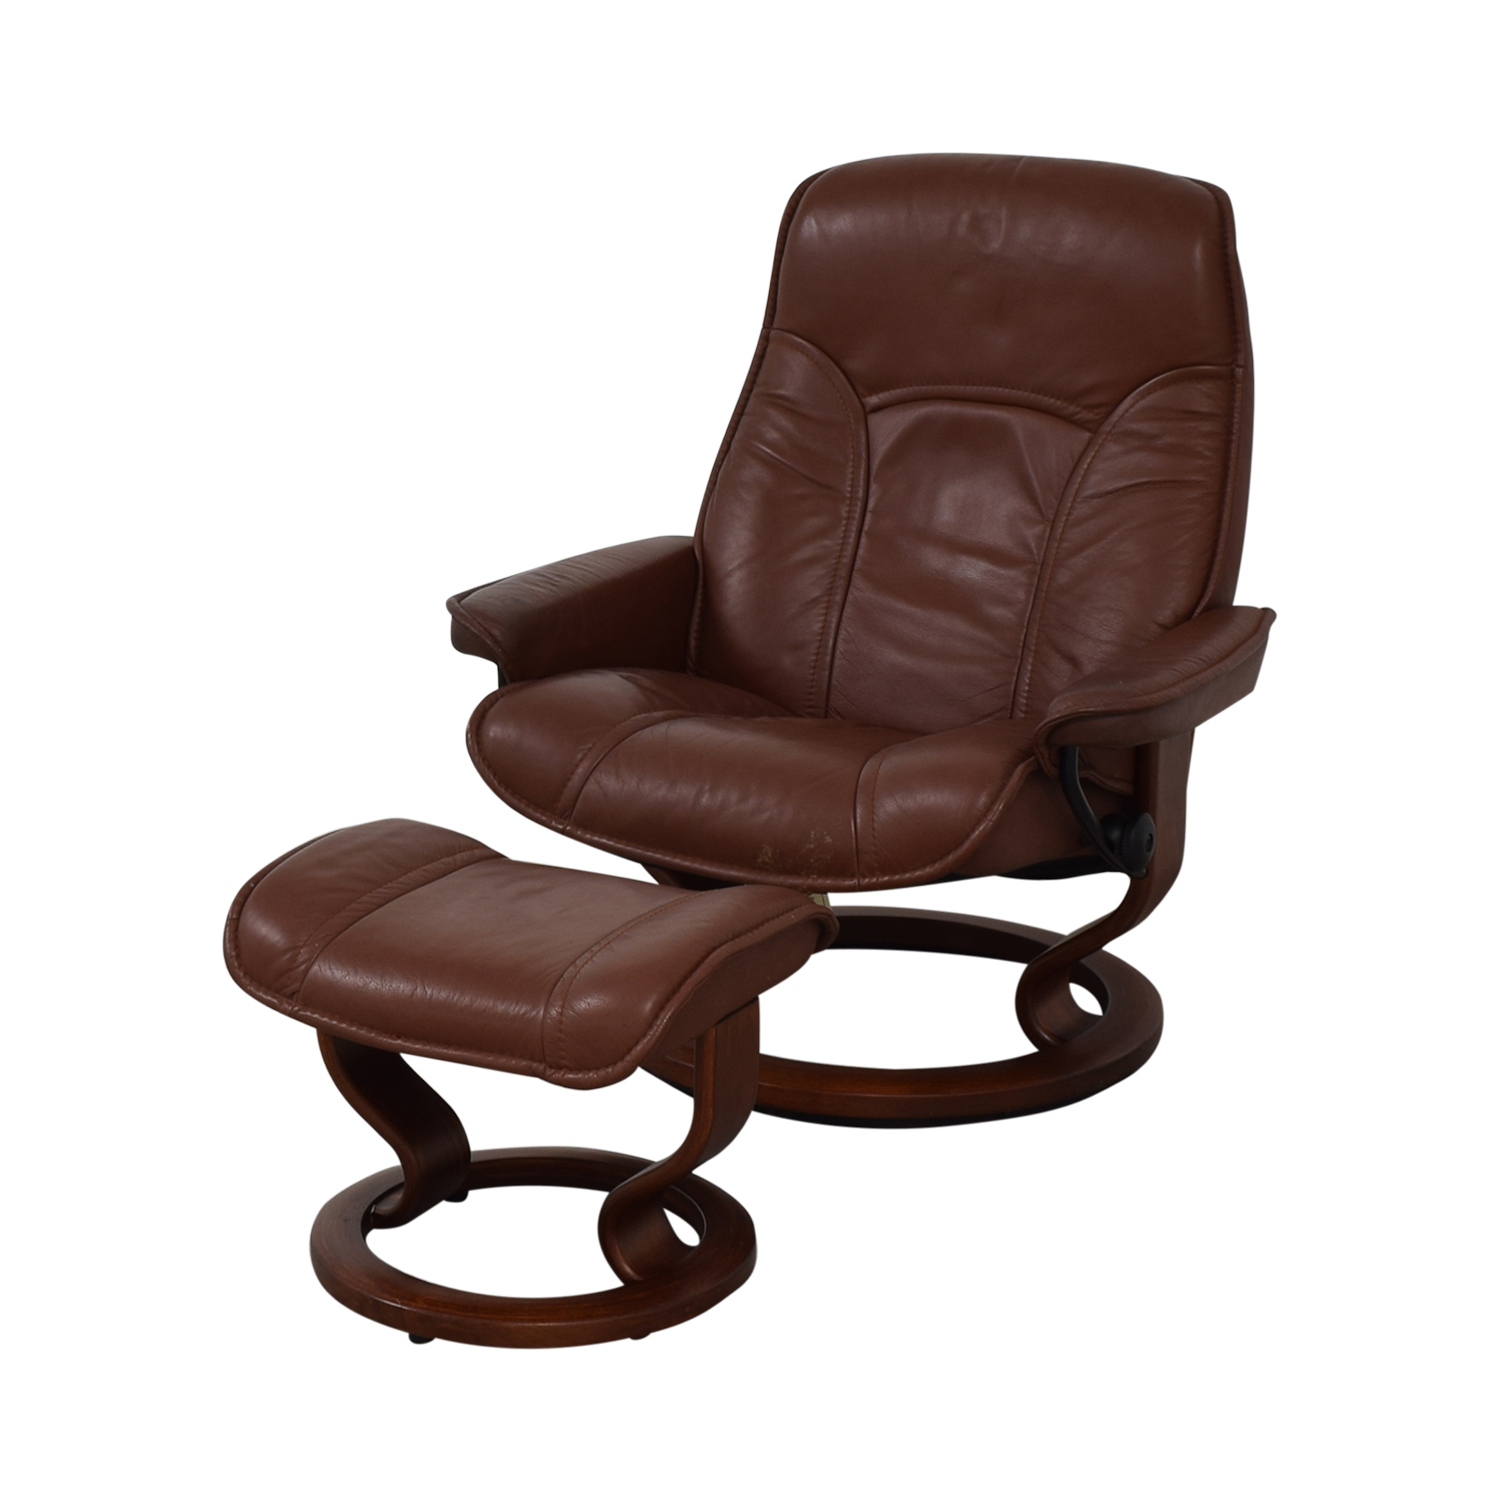 Brown Swivel Chair with Ottoman nj